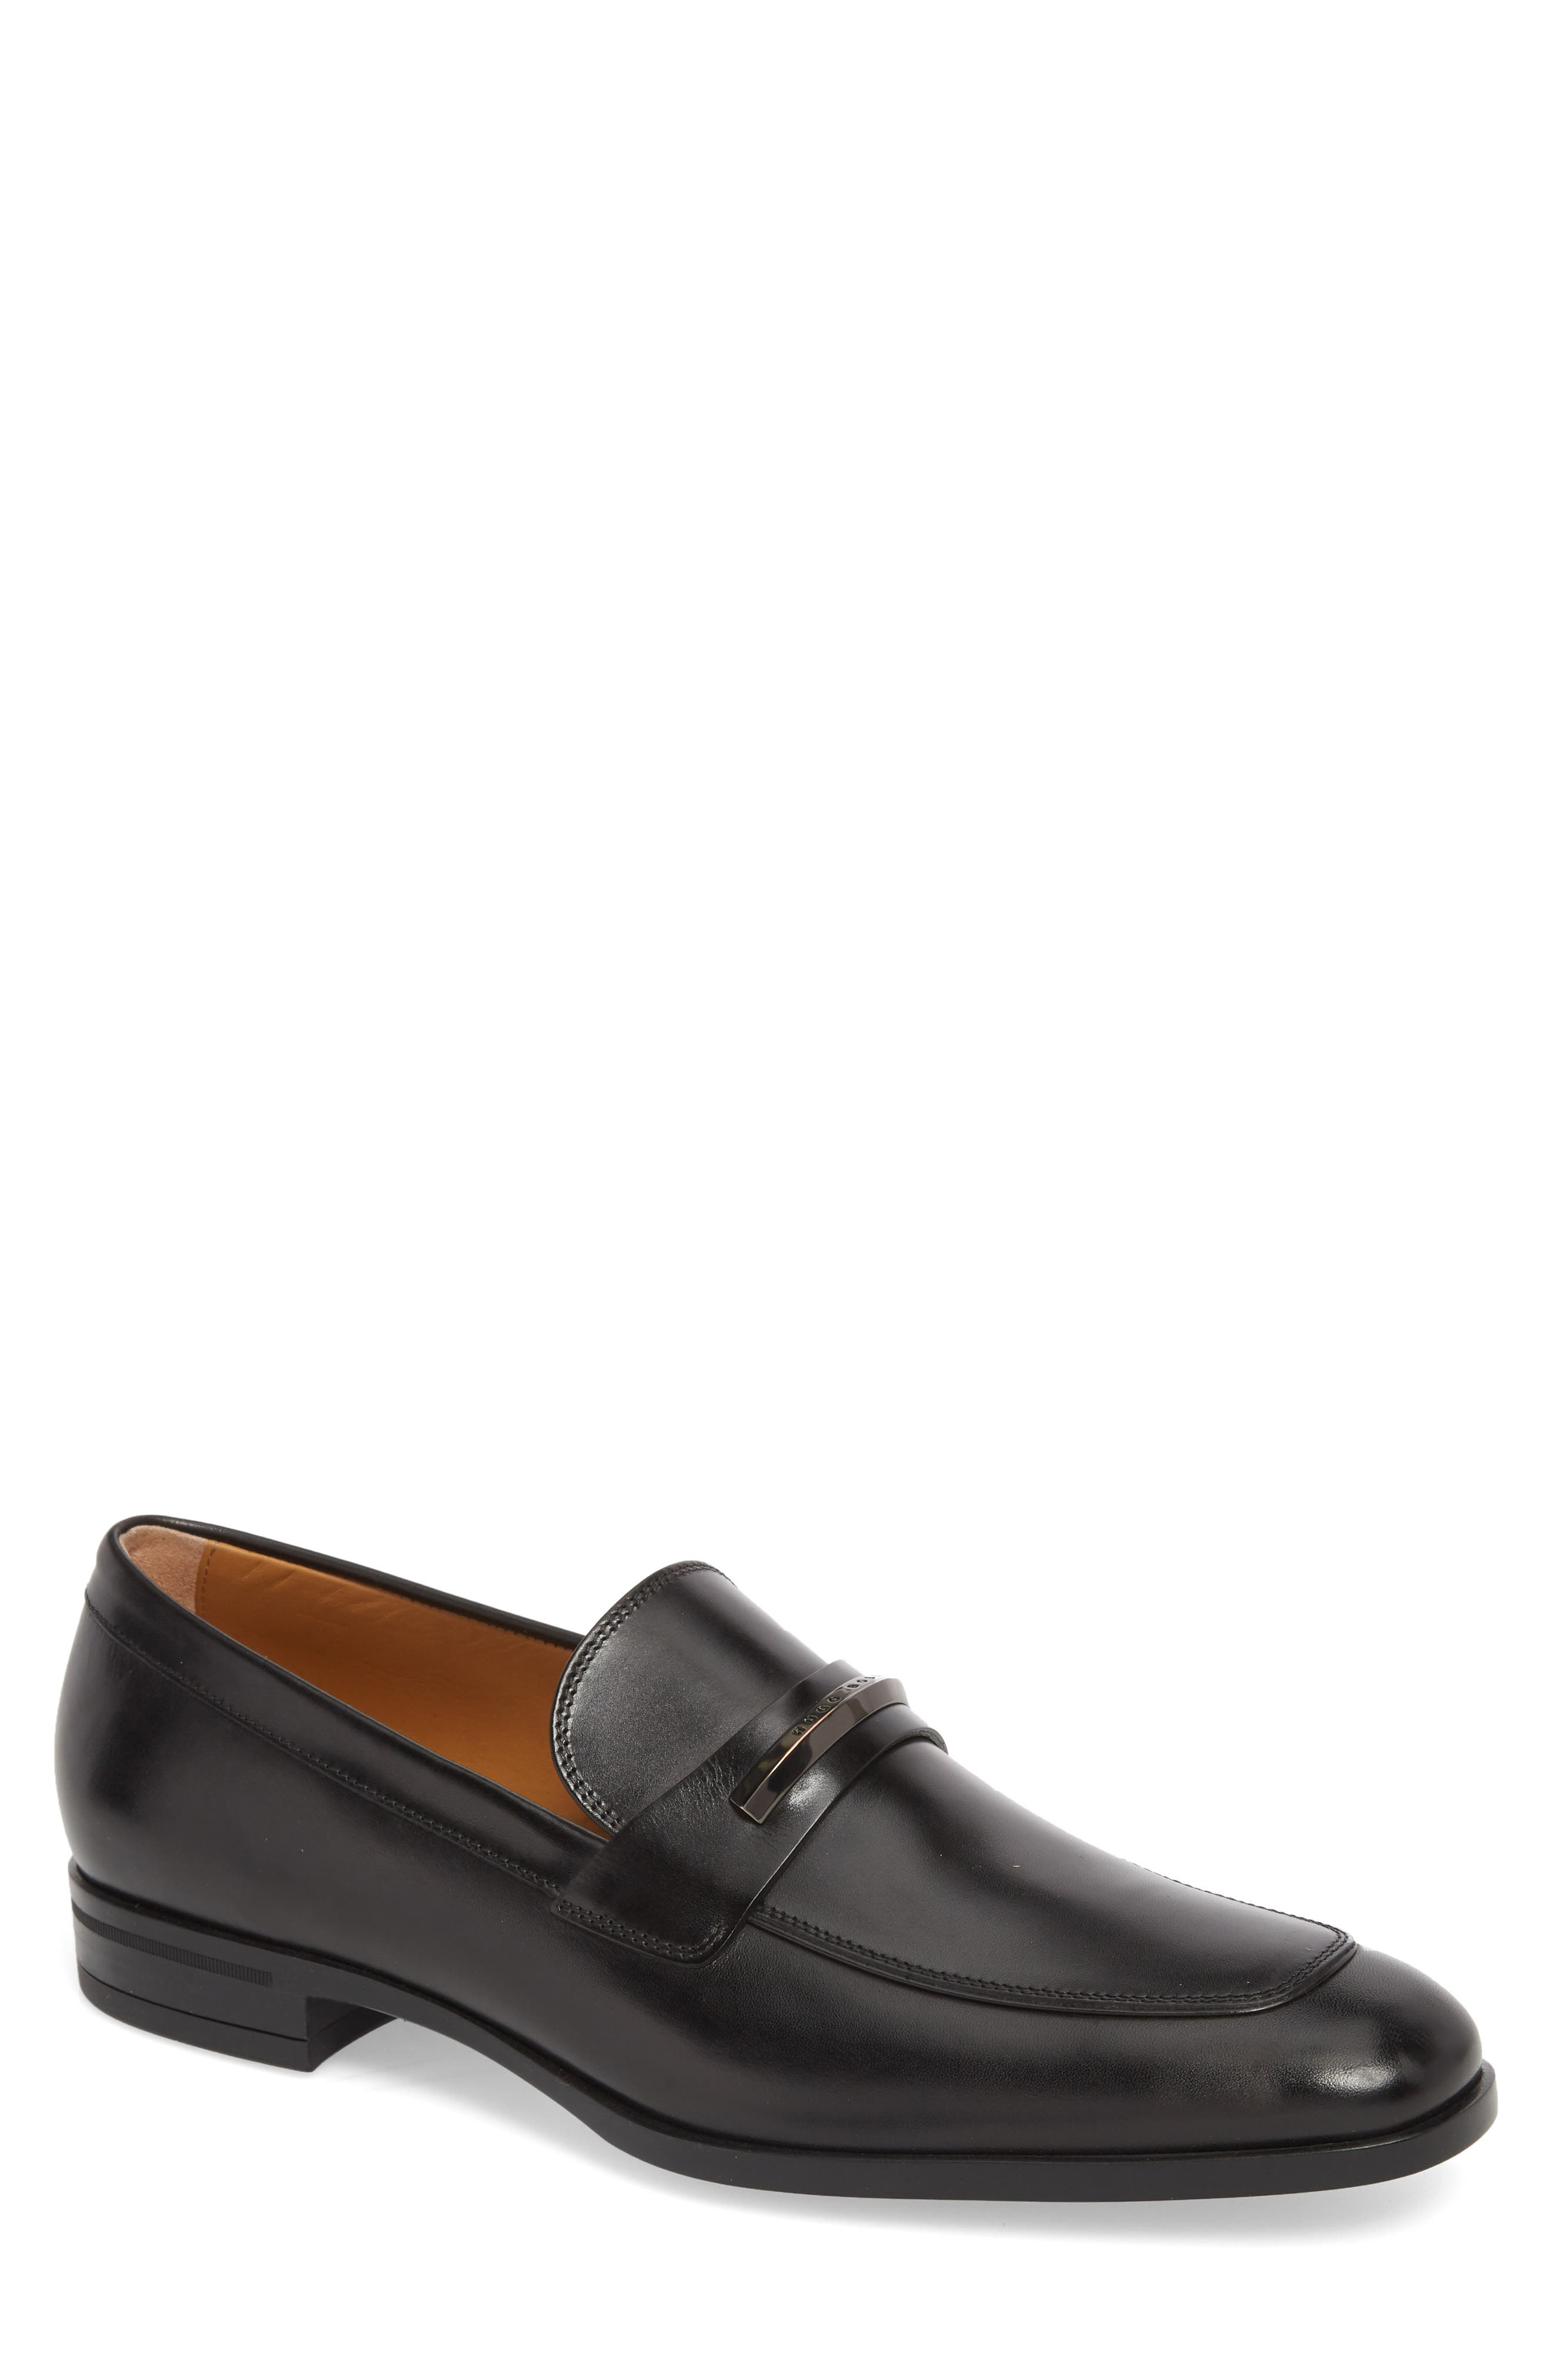 Hugo Boss Portland Solid Bit Loafer,                         Main,                         color, BLACK LEATHER